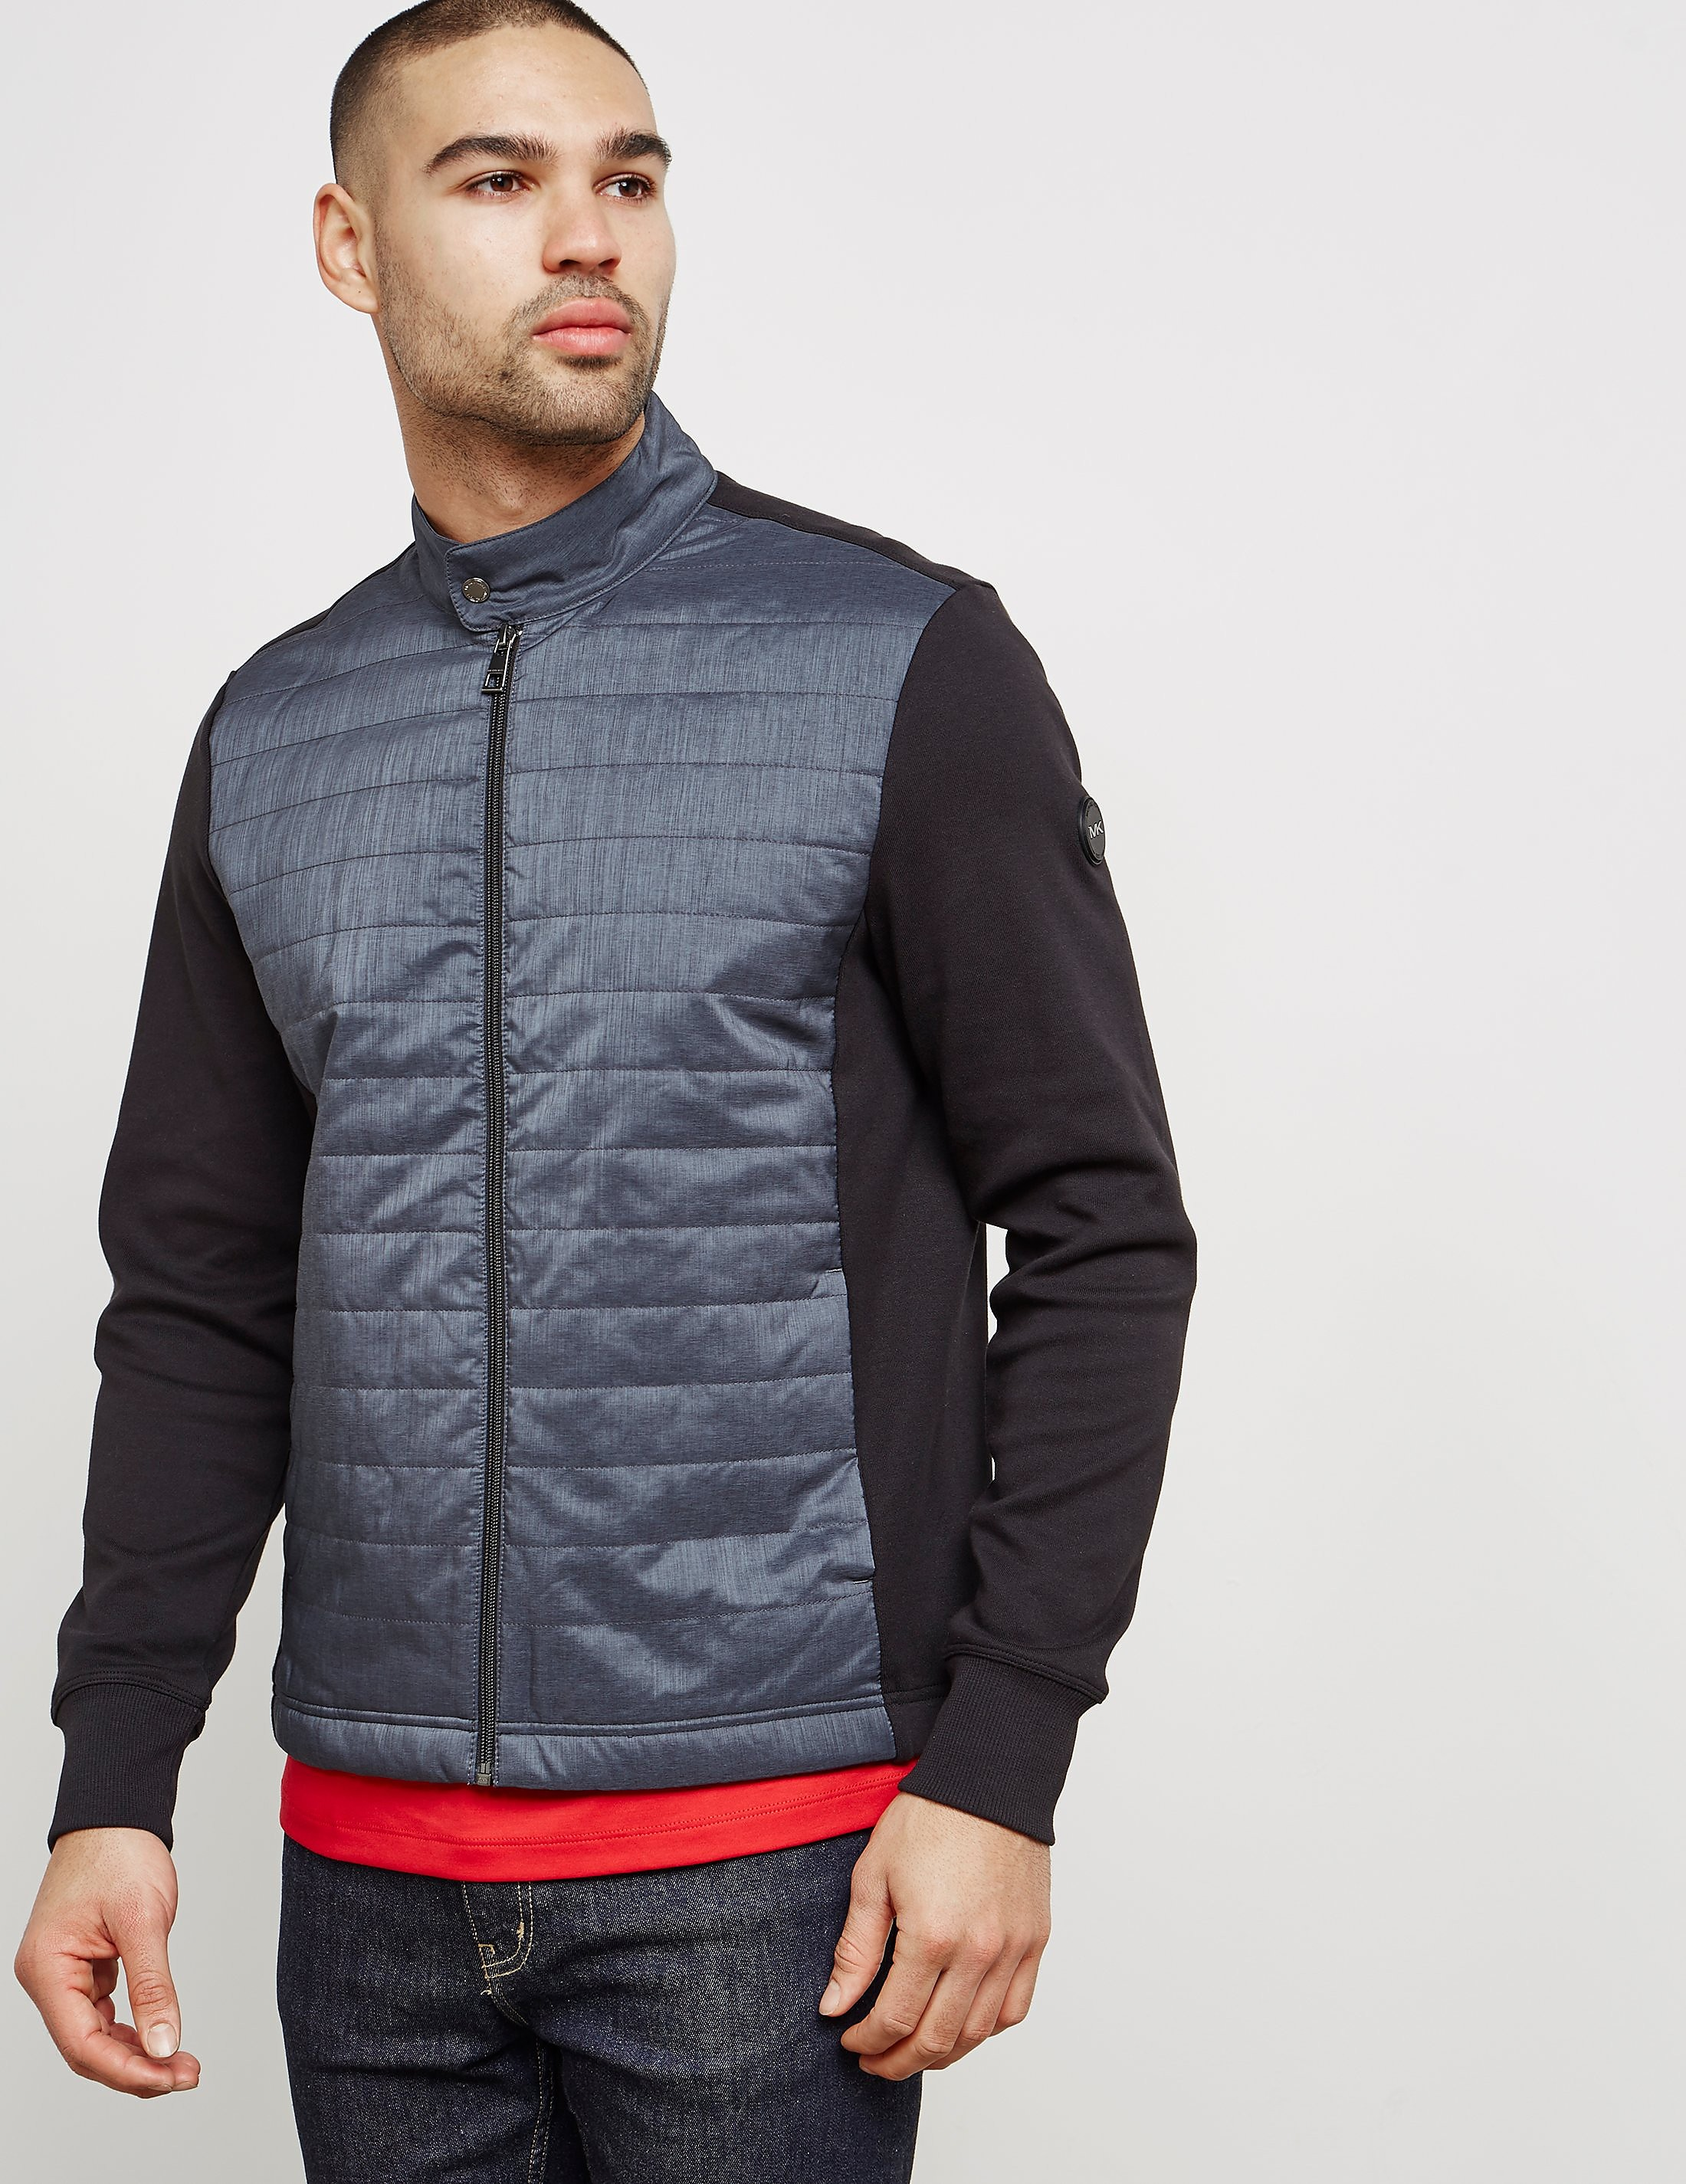 Michael Kors Quilted Zip-Up Track Top